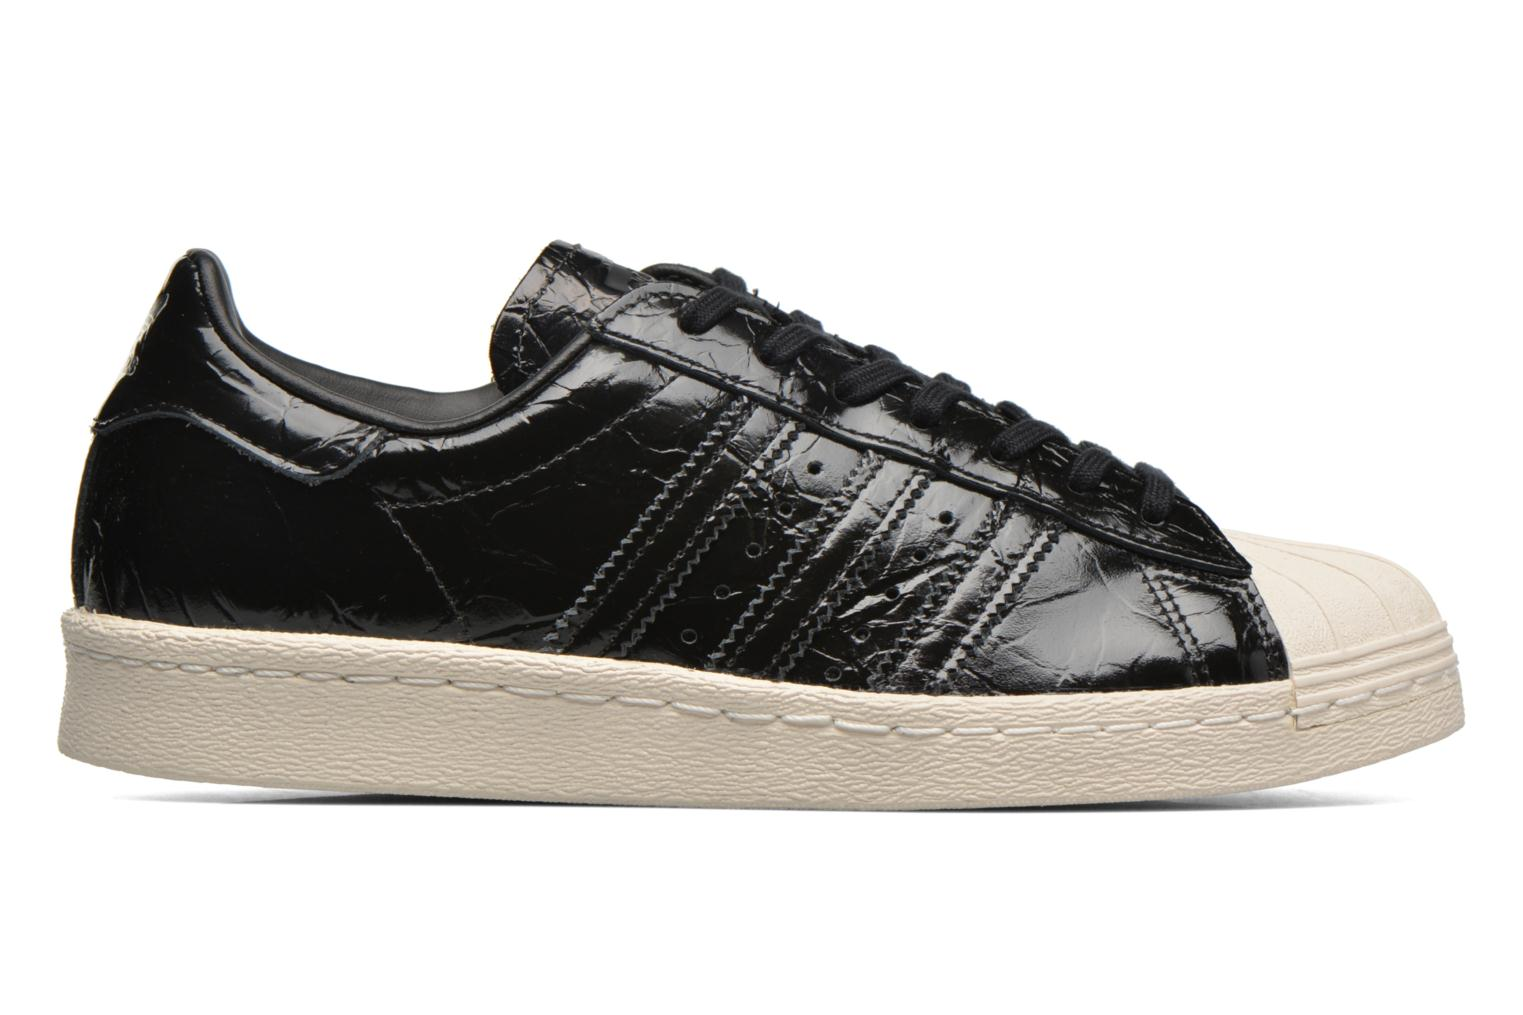 Superstar 80S W Noiess/Noiess/Blacas